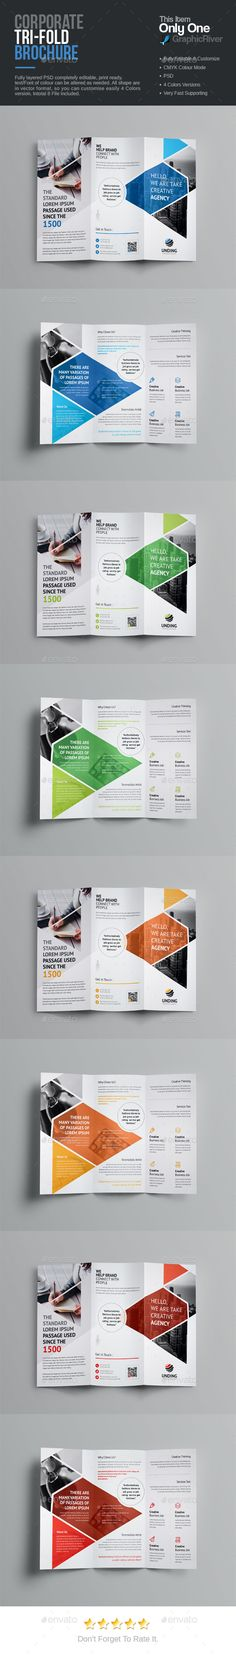 get your attractive and professional real estate brochure design within 24 hours https